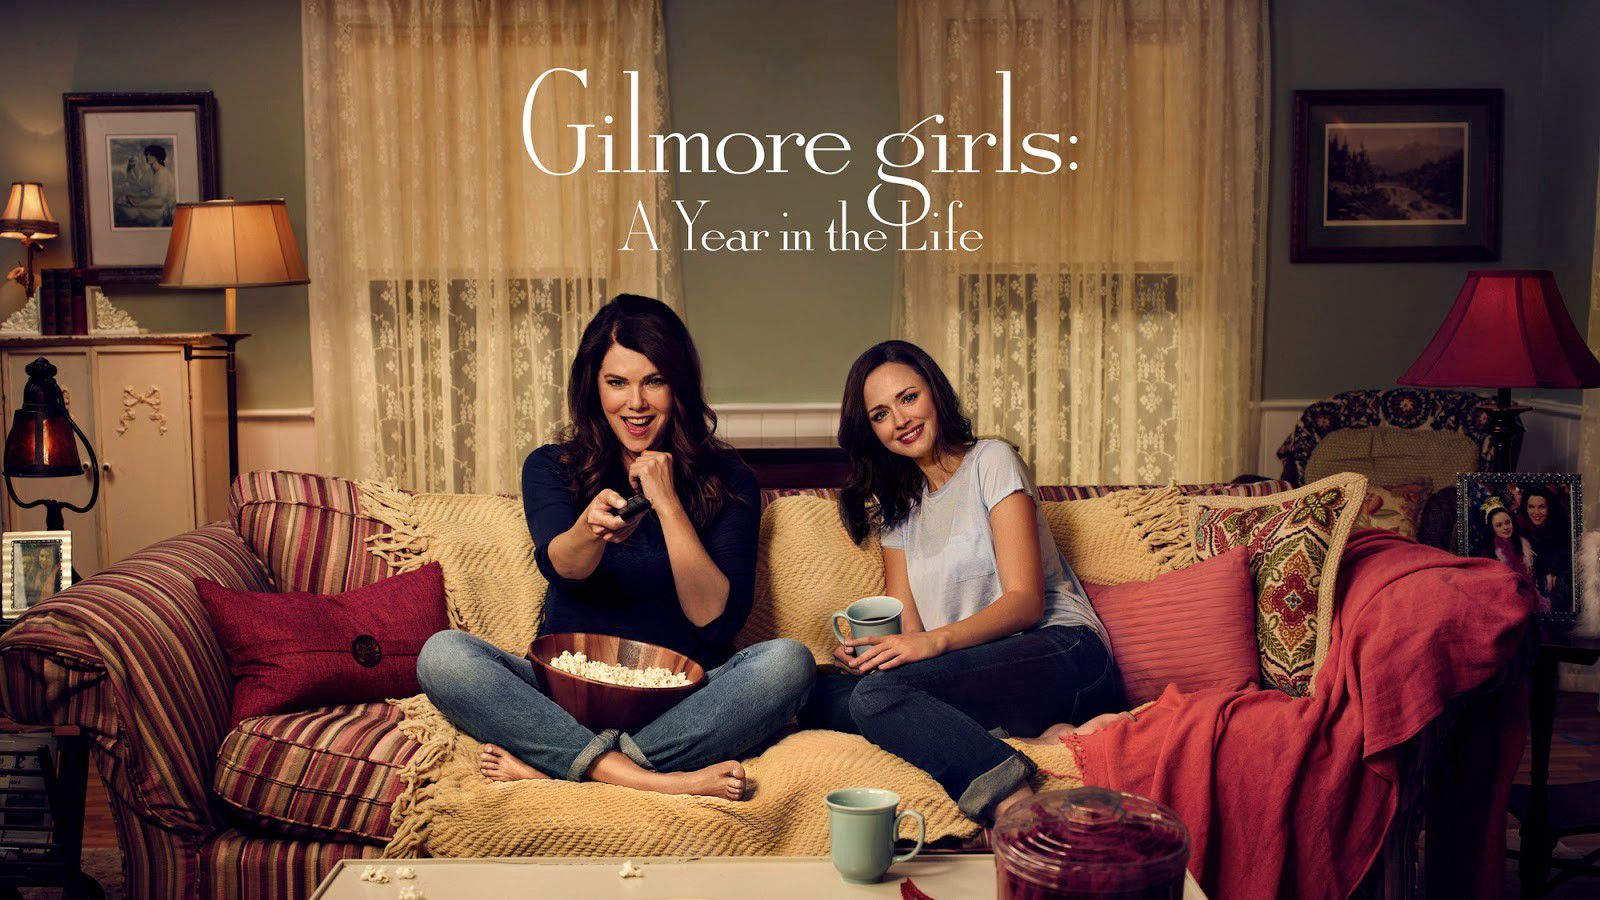 Ma série de quarantaine: Gilmore girls